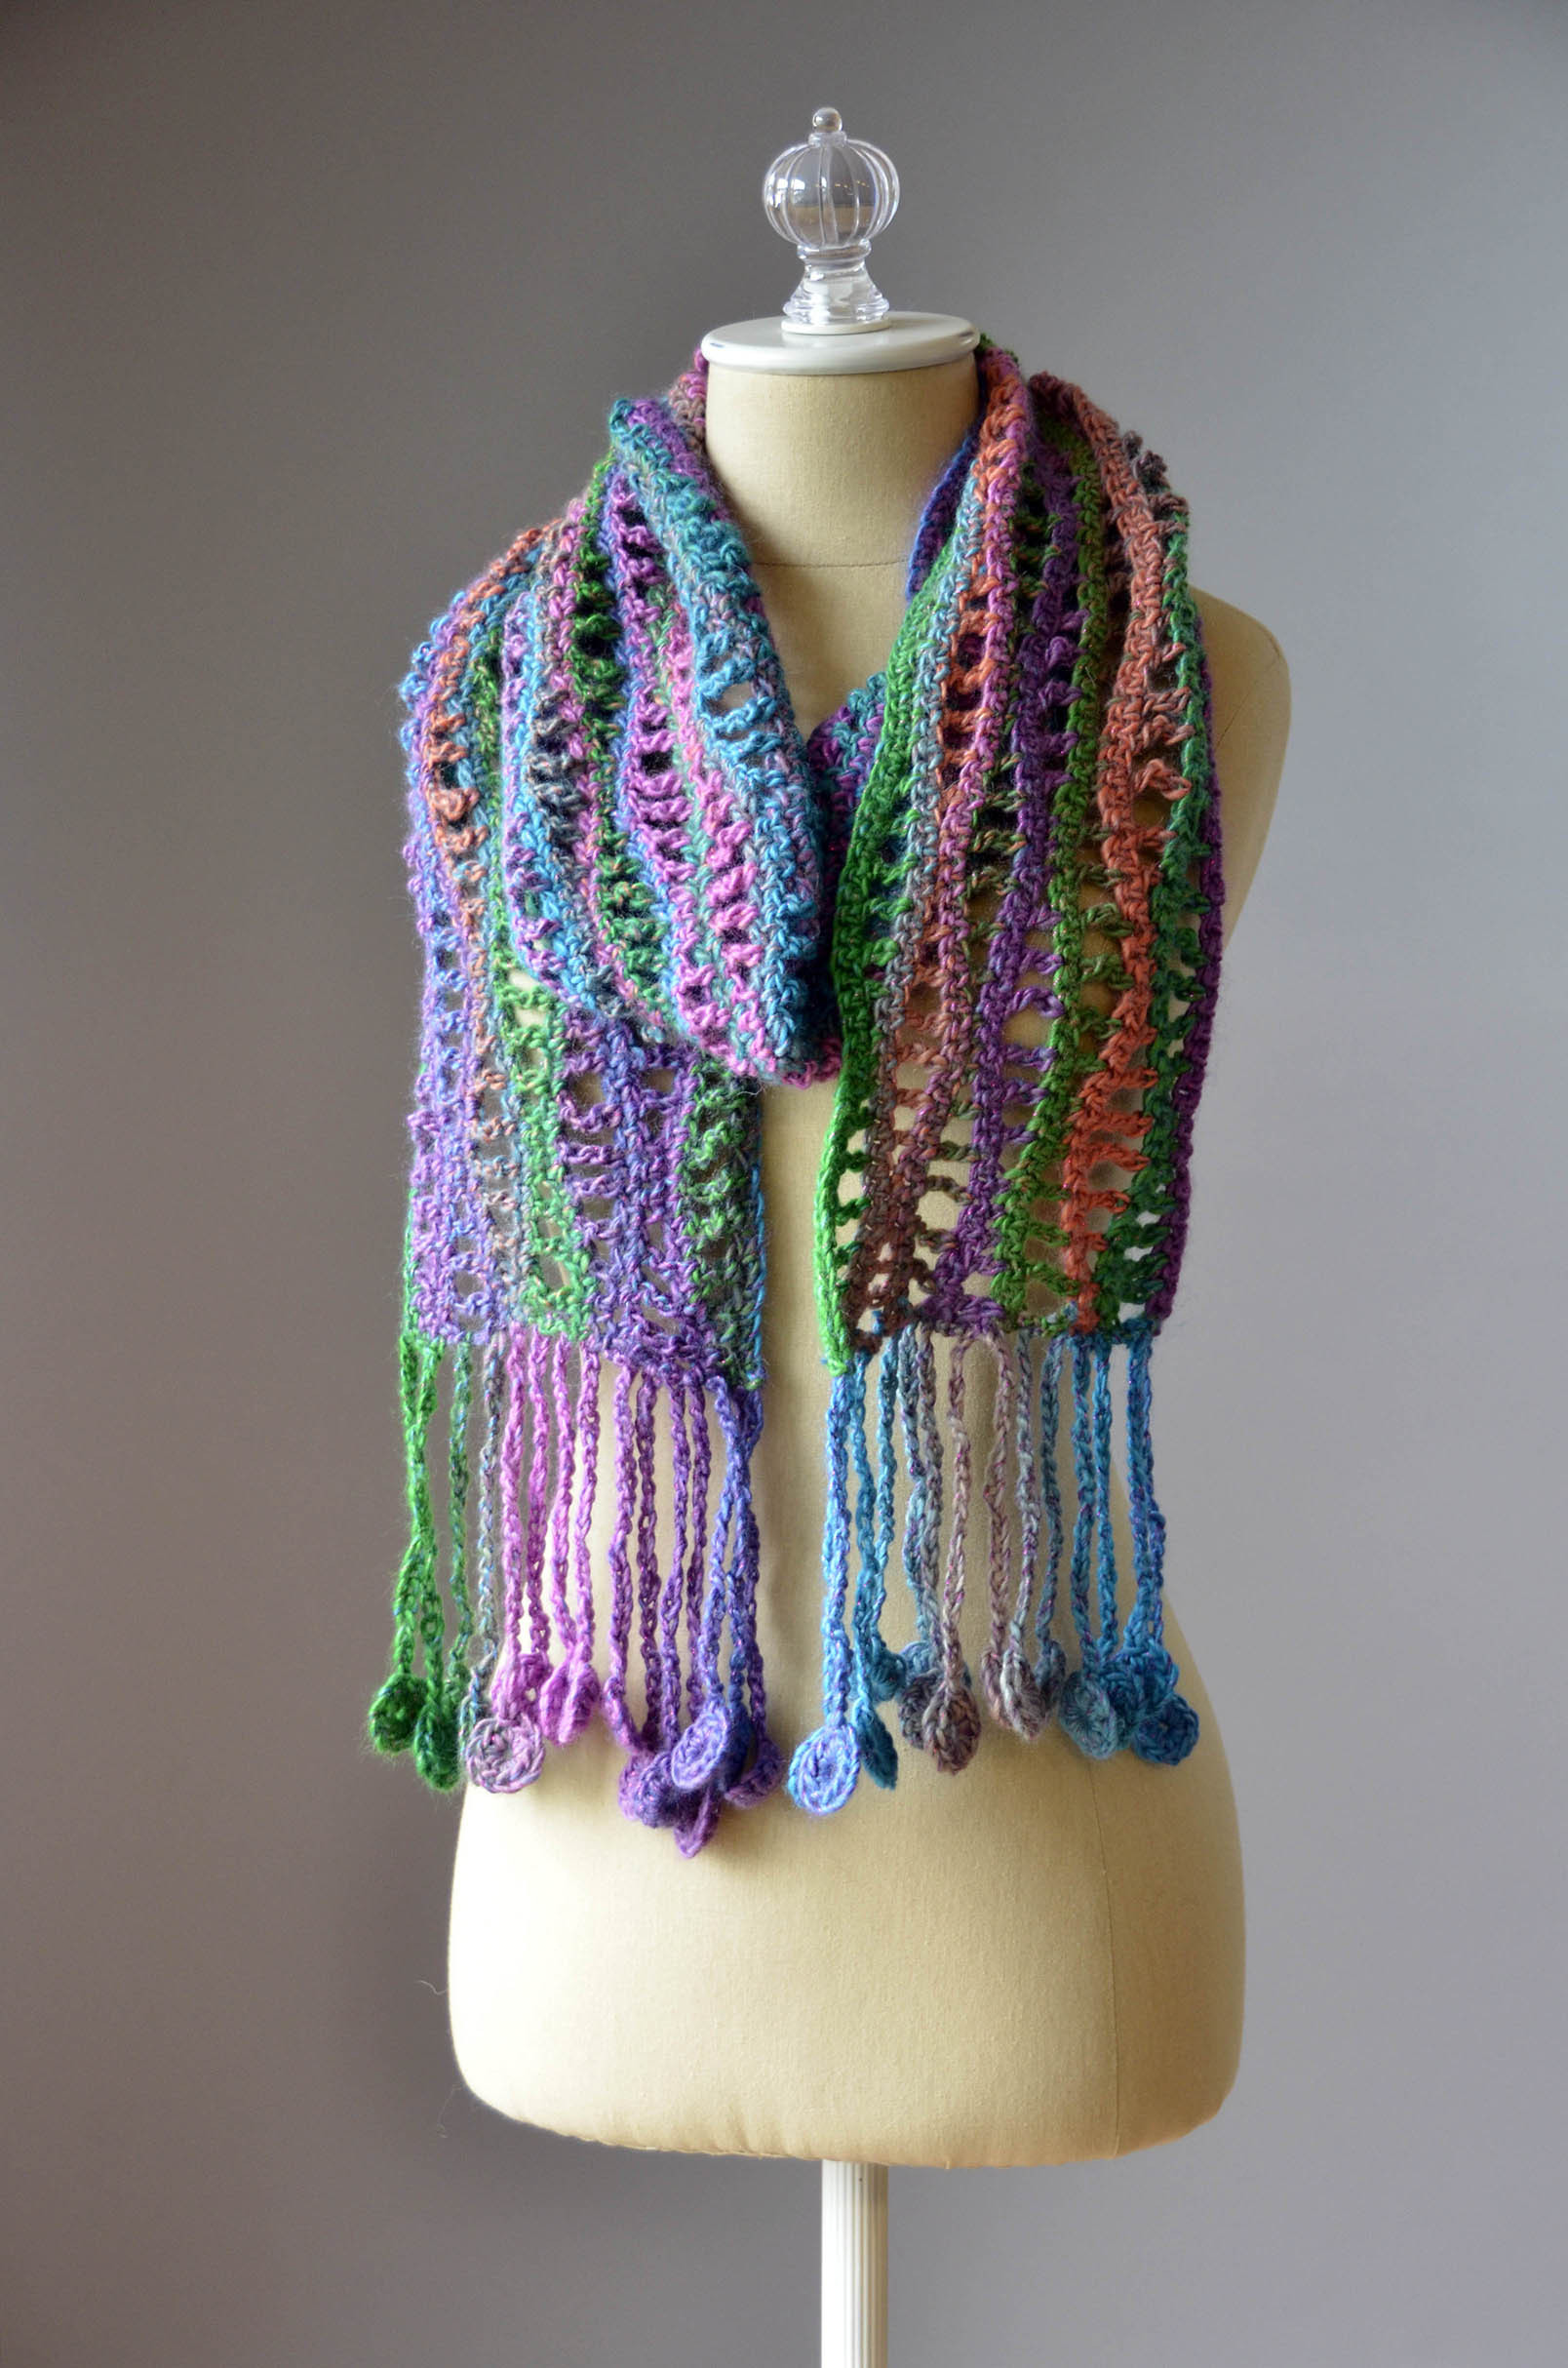 Free Crochet Scarf Patterns Inspirational Free Pattern Friday – Crochet Coin Scarf – Universal Yarn Of Charming 48 Images Free Crochet Scarf Patterns